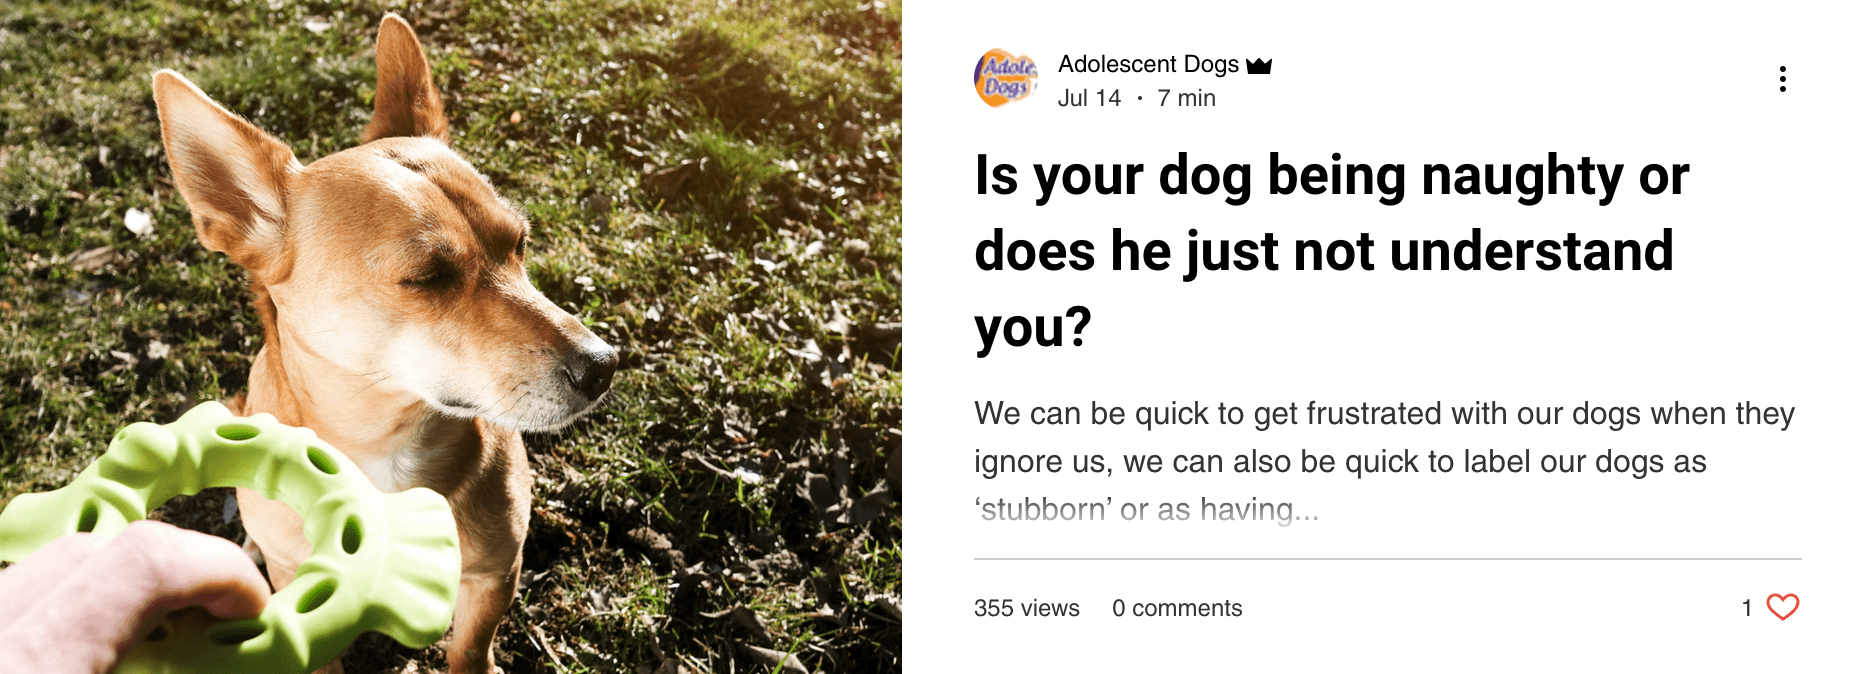 Is Your Dog Being Naughty